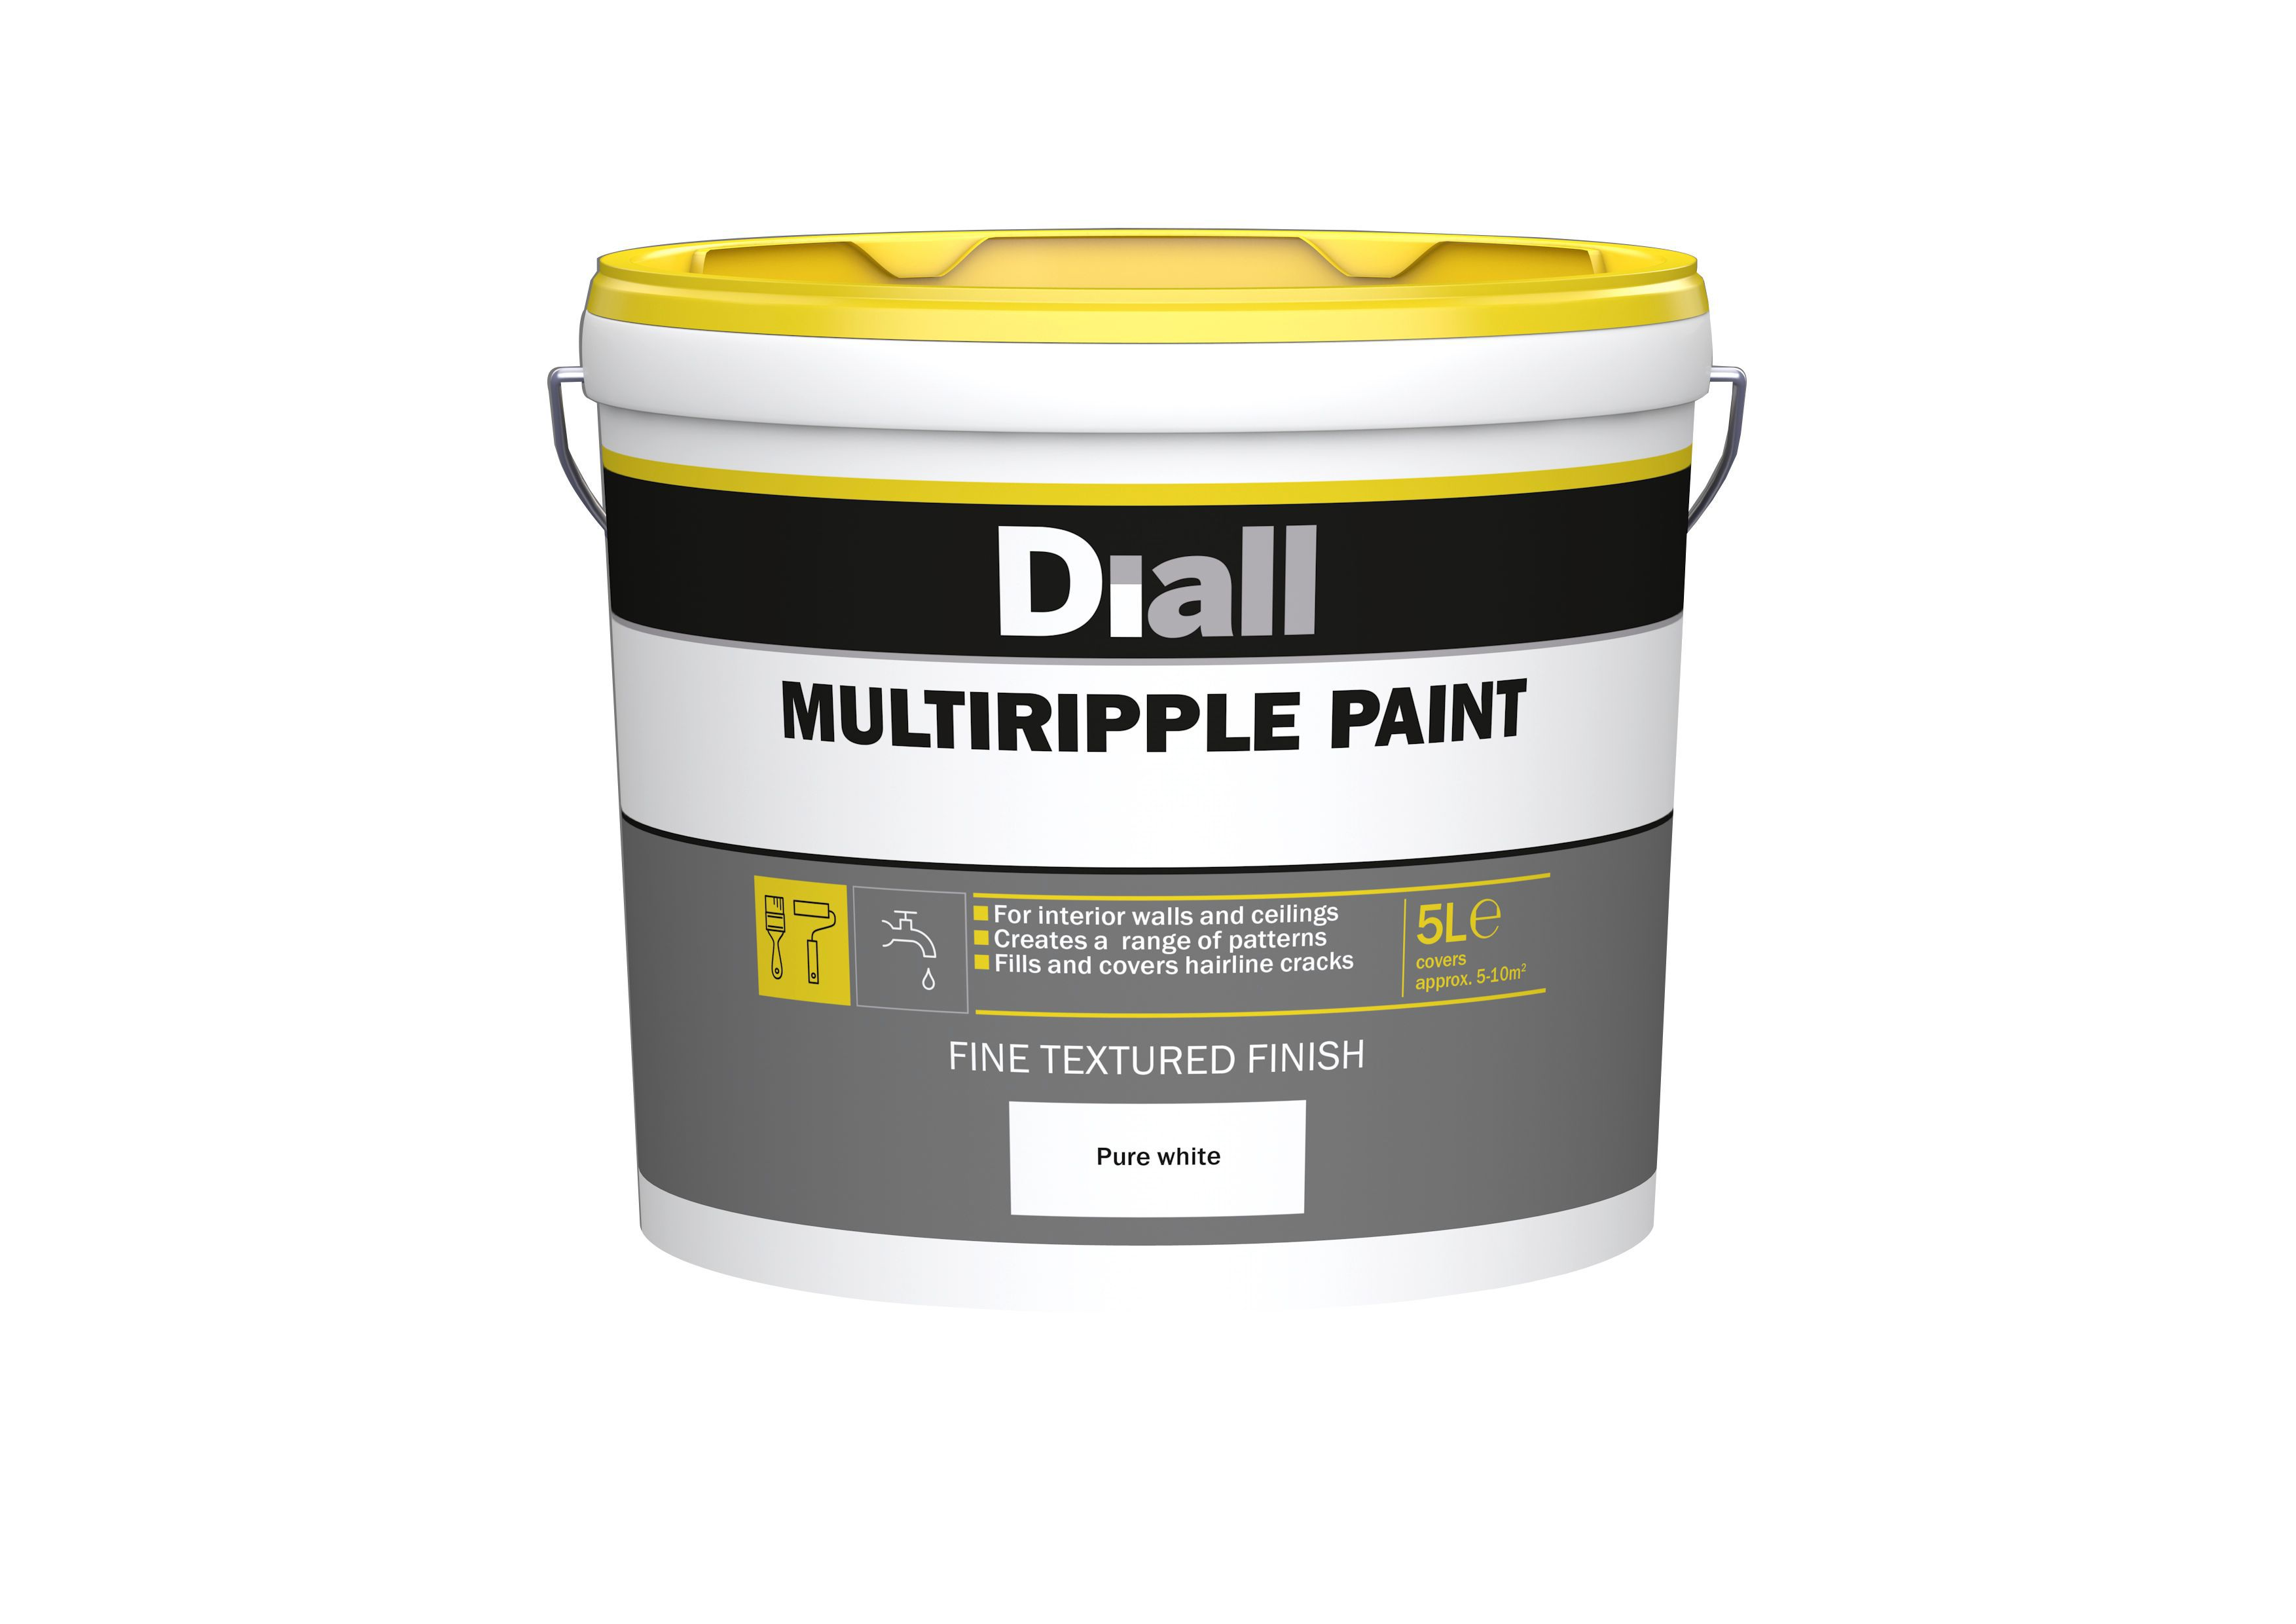 B&q Multi Ripple Pure White Textured Special Effect Paint 5l